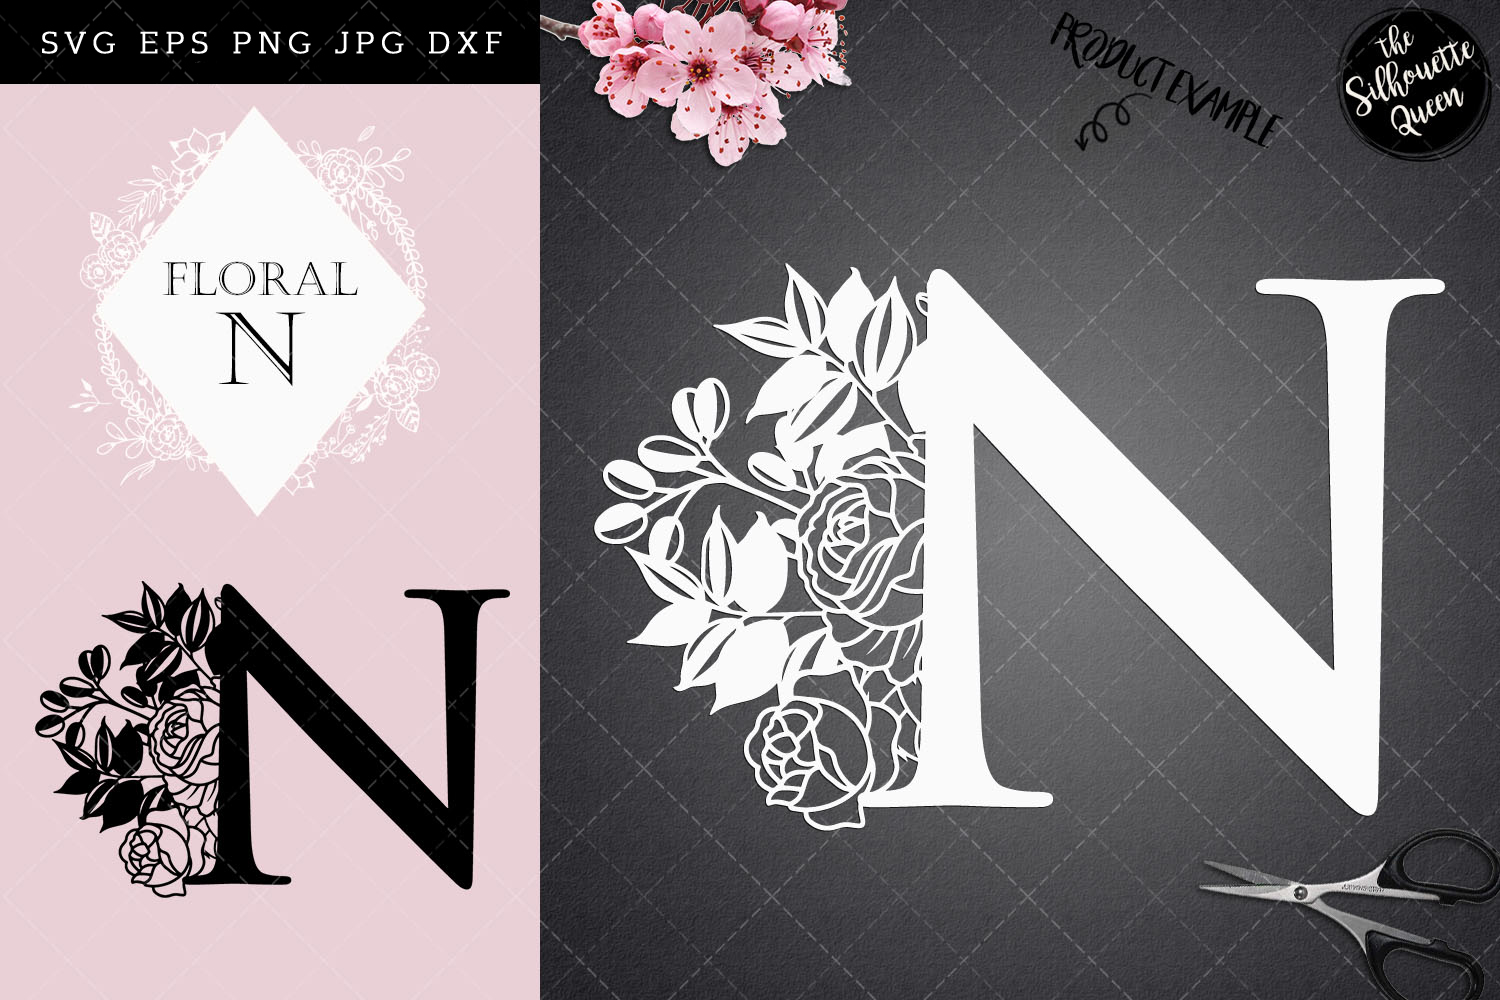 Download Free N Floral Letter Design Graphic By Thesilhouettequeenshop for Cricut Explore, Silhouette and other cutting machines.